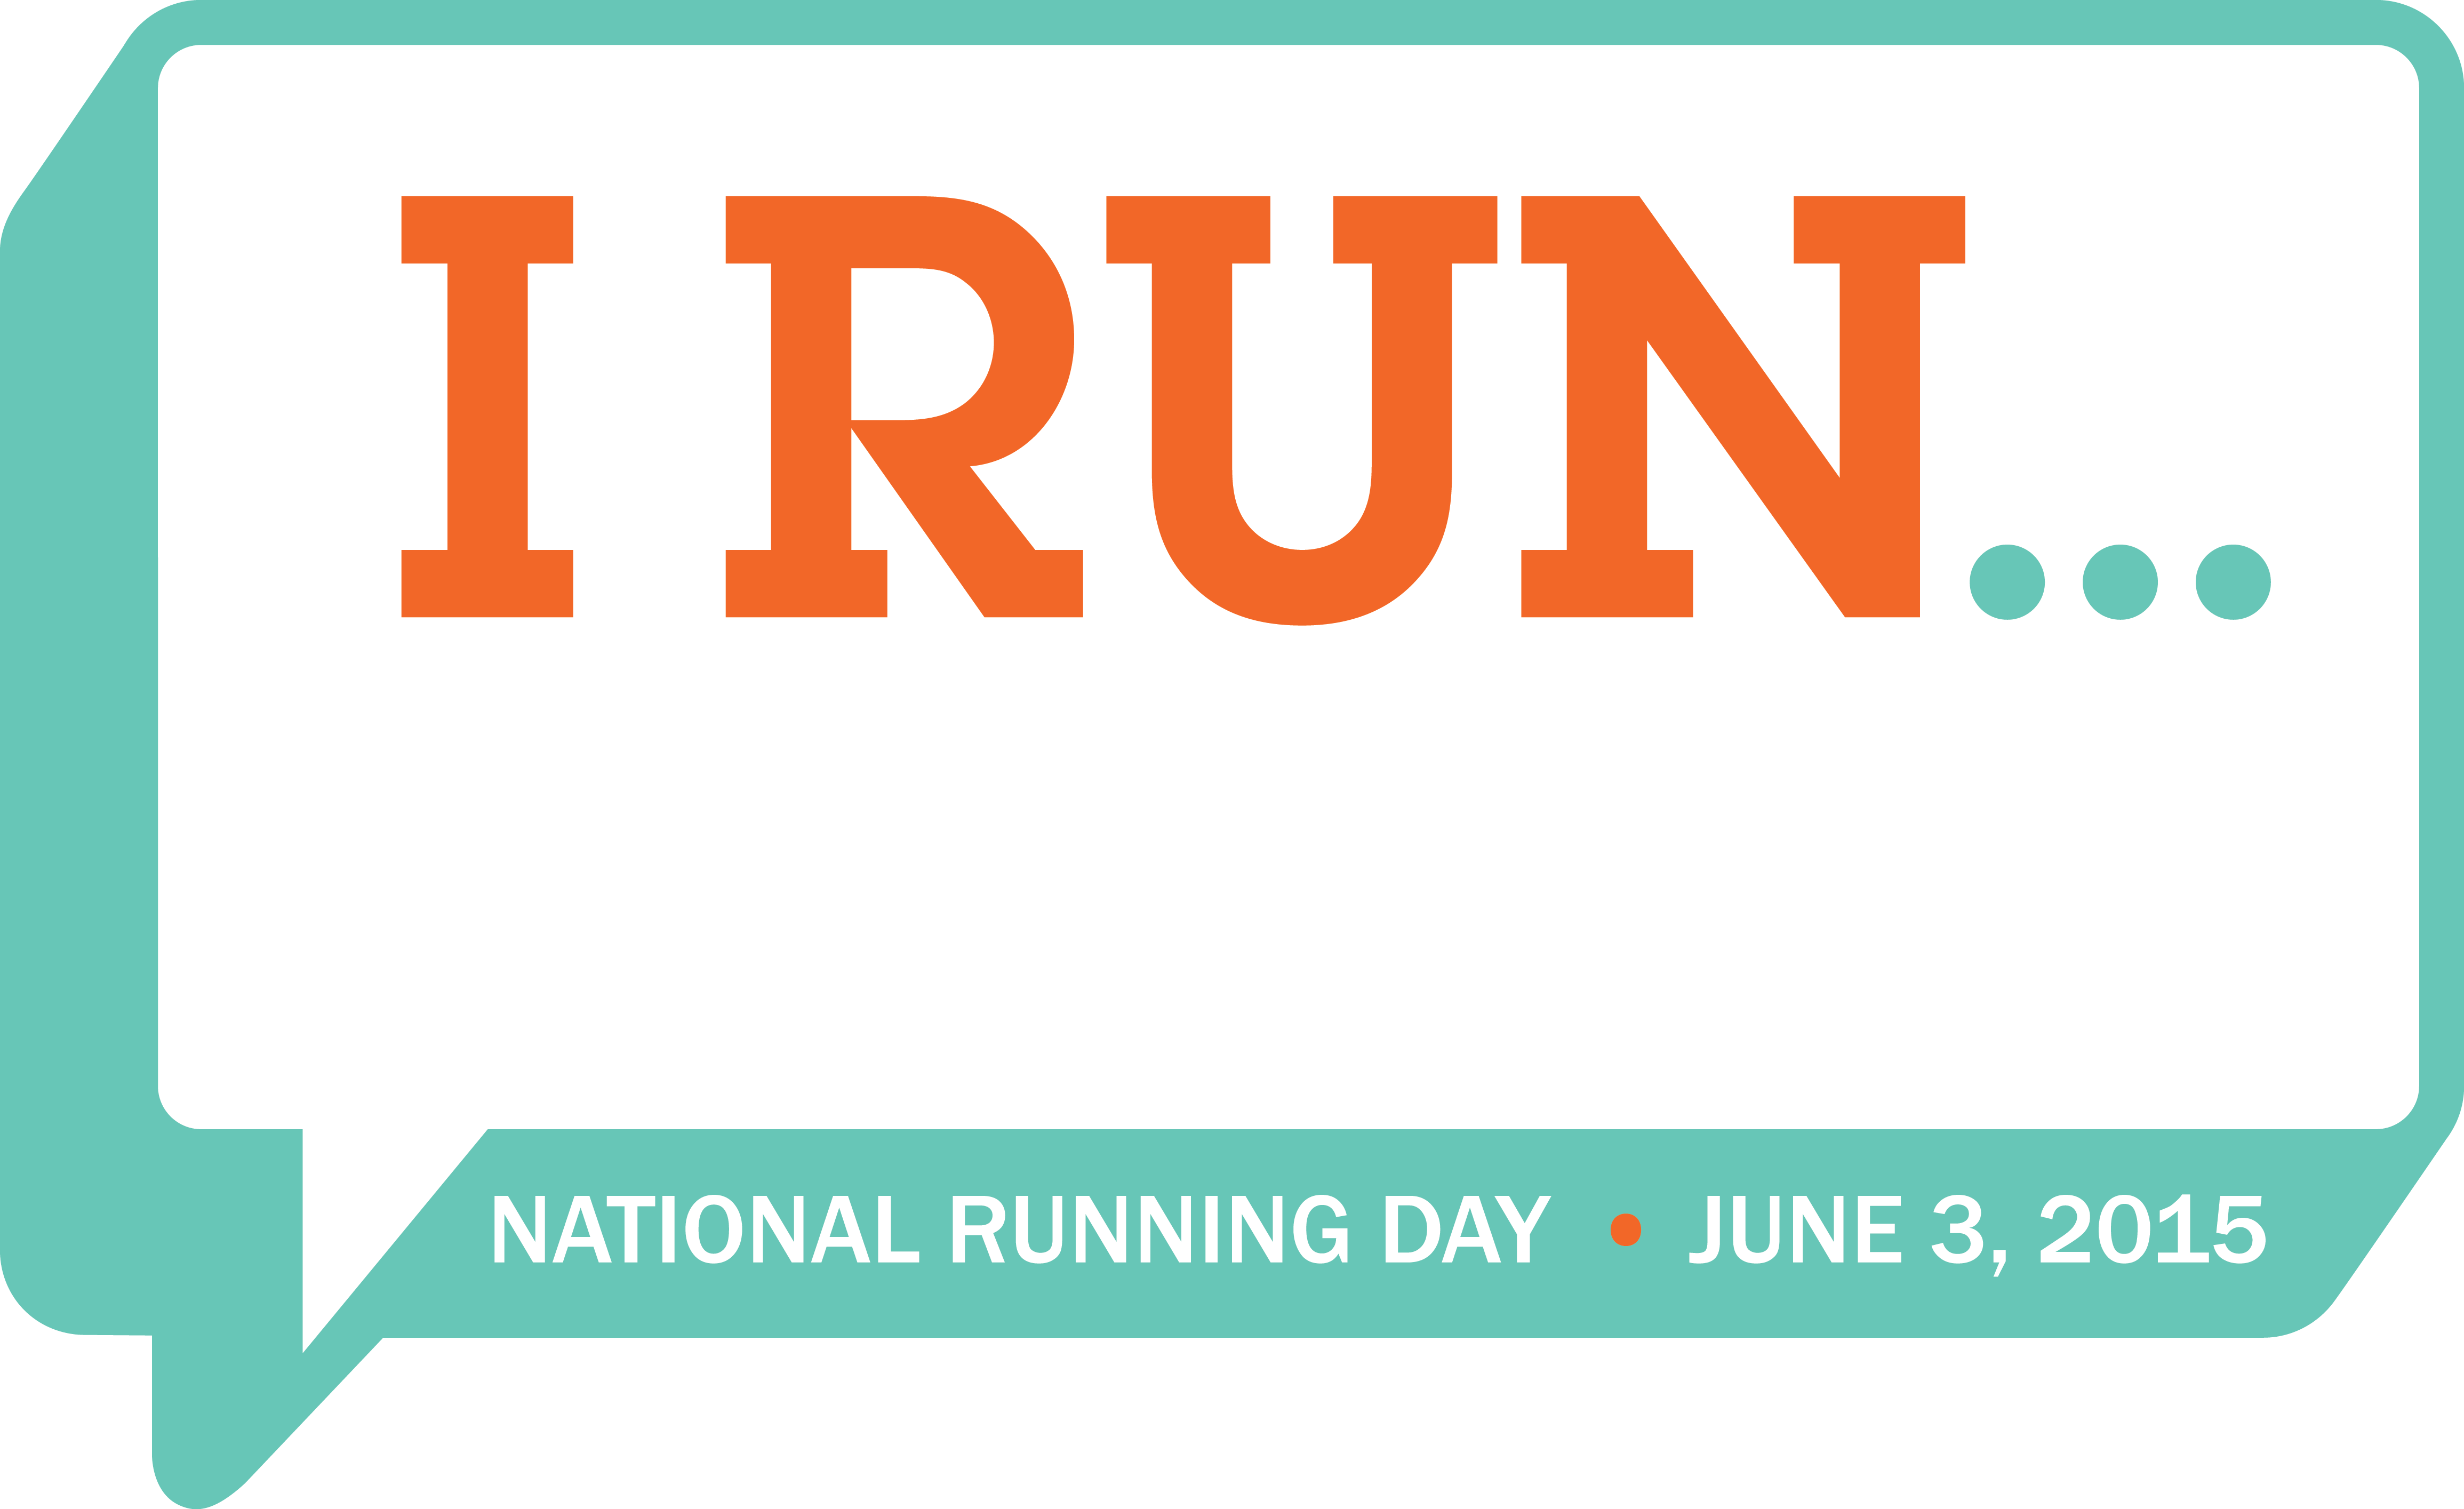 national running day, running, june 3